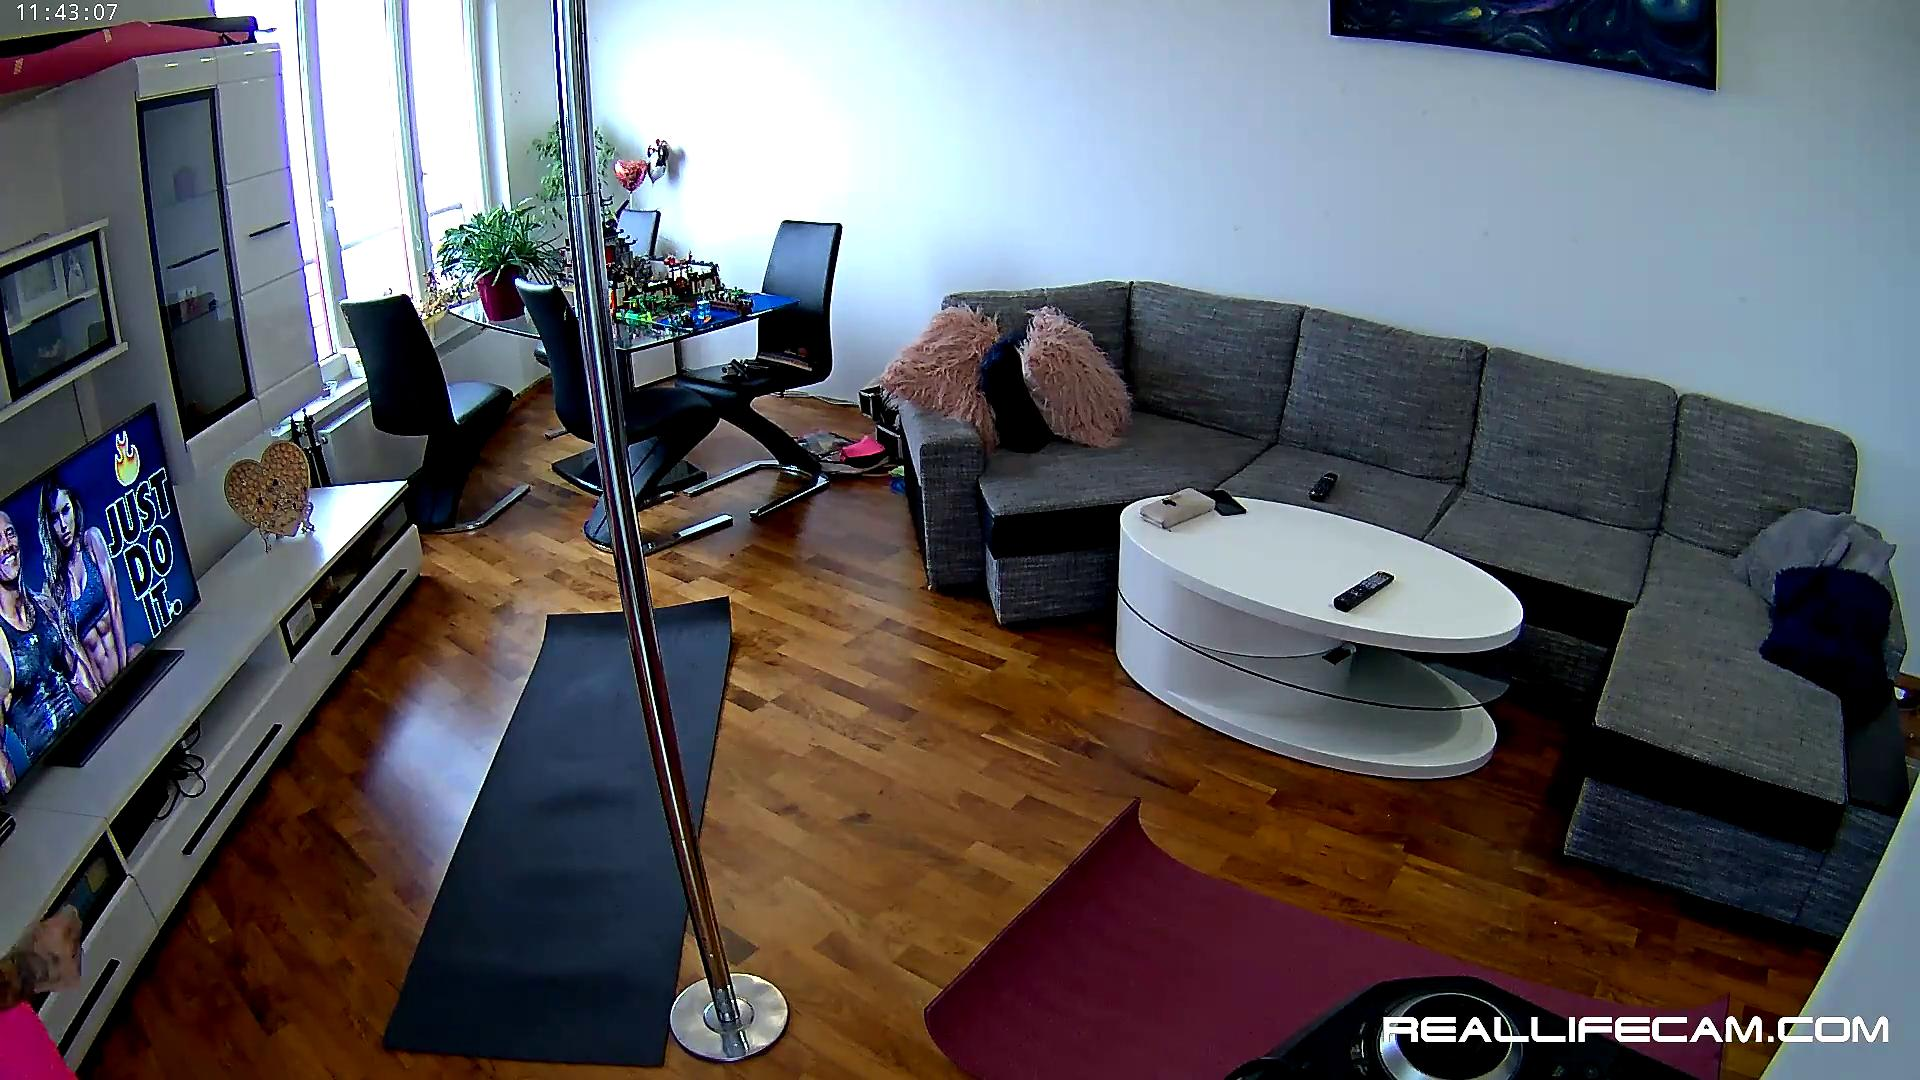 Reallifecam - Linda and her friend are doing fitness 31 08 2021